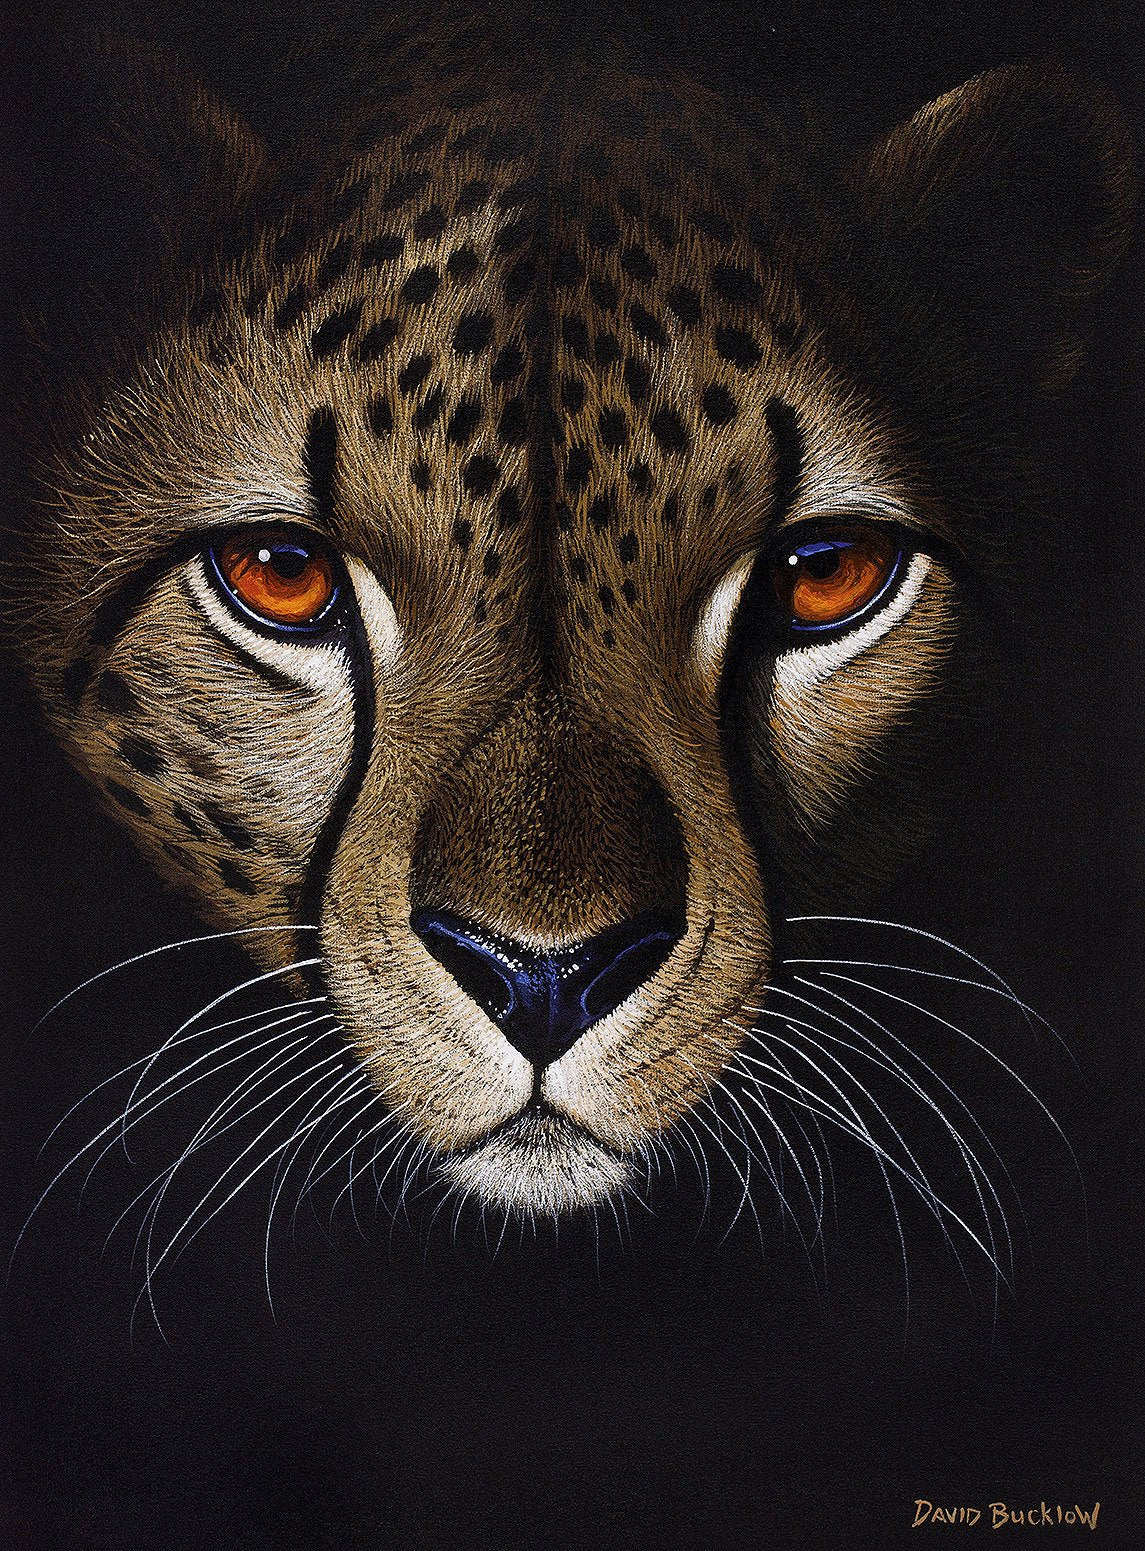 A beautiful painting of a cheetah about to start running by artist David Bucklow. The artwork has painted the cheetah at night.